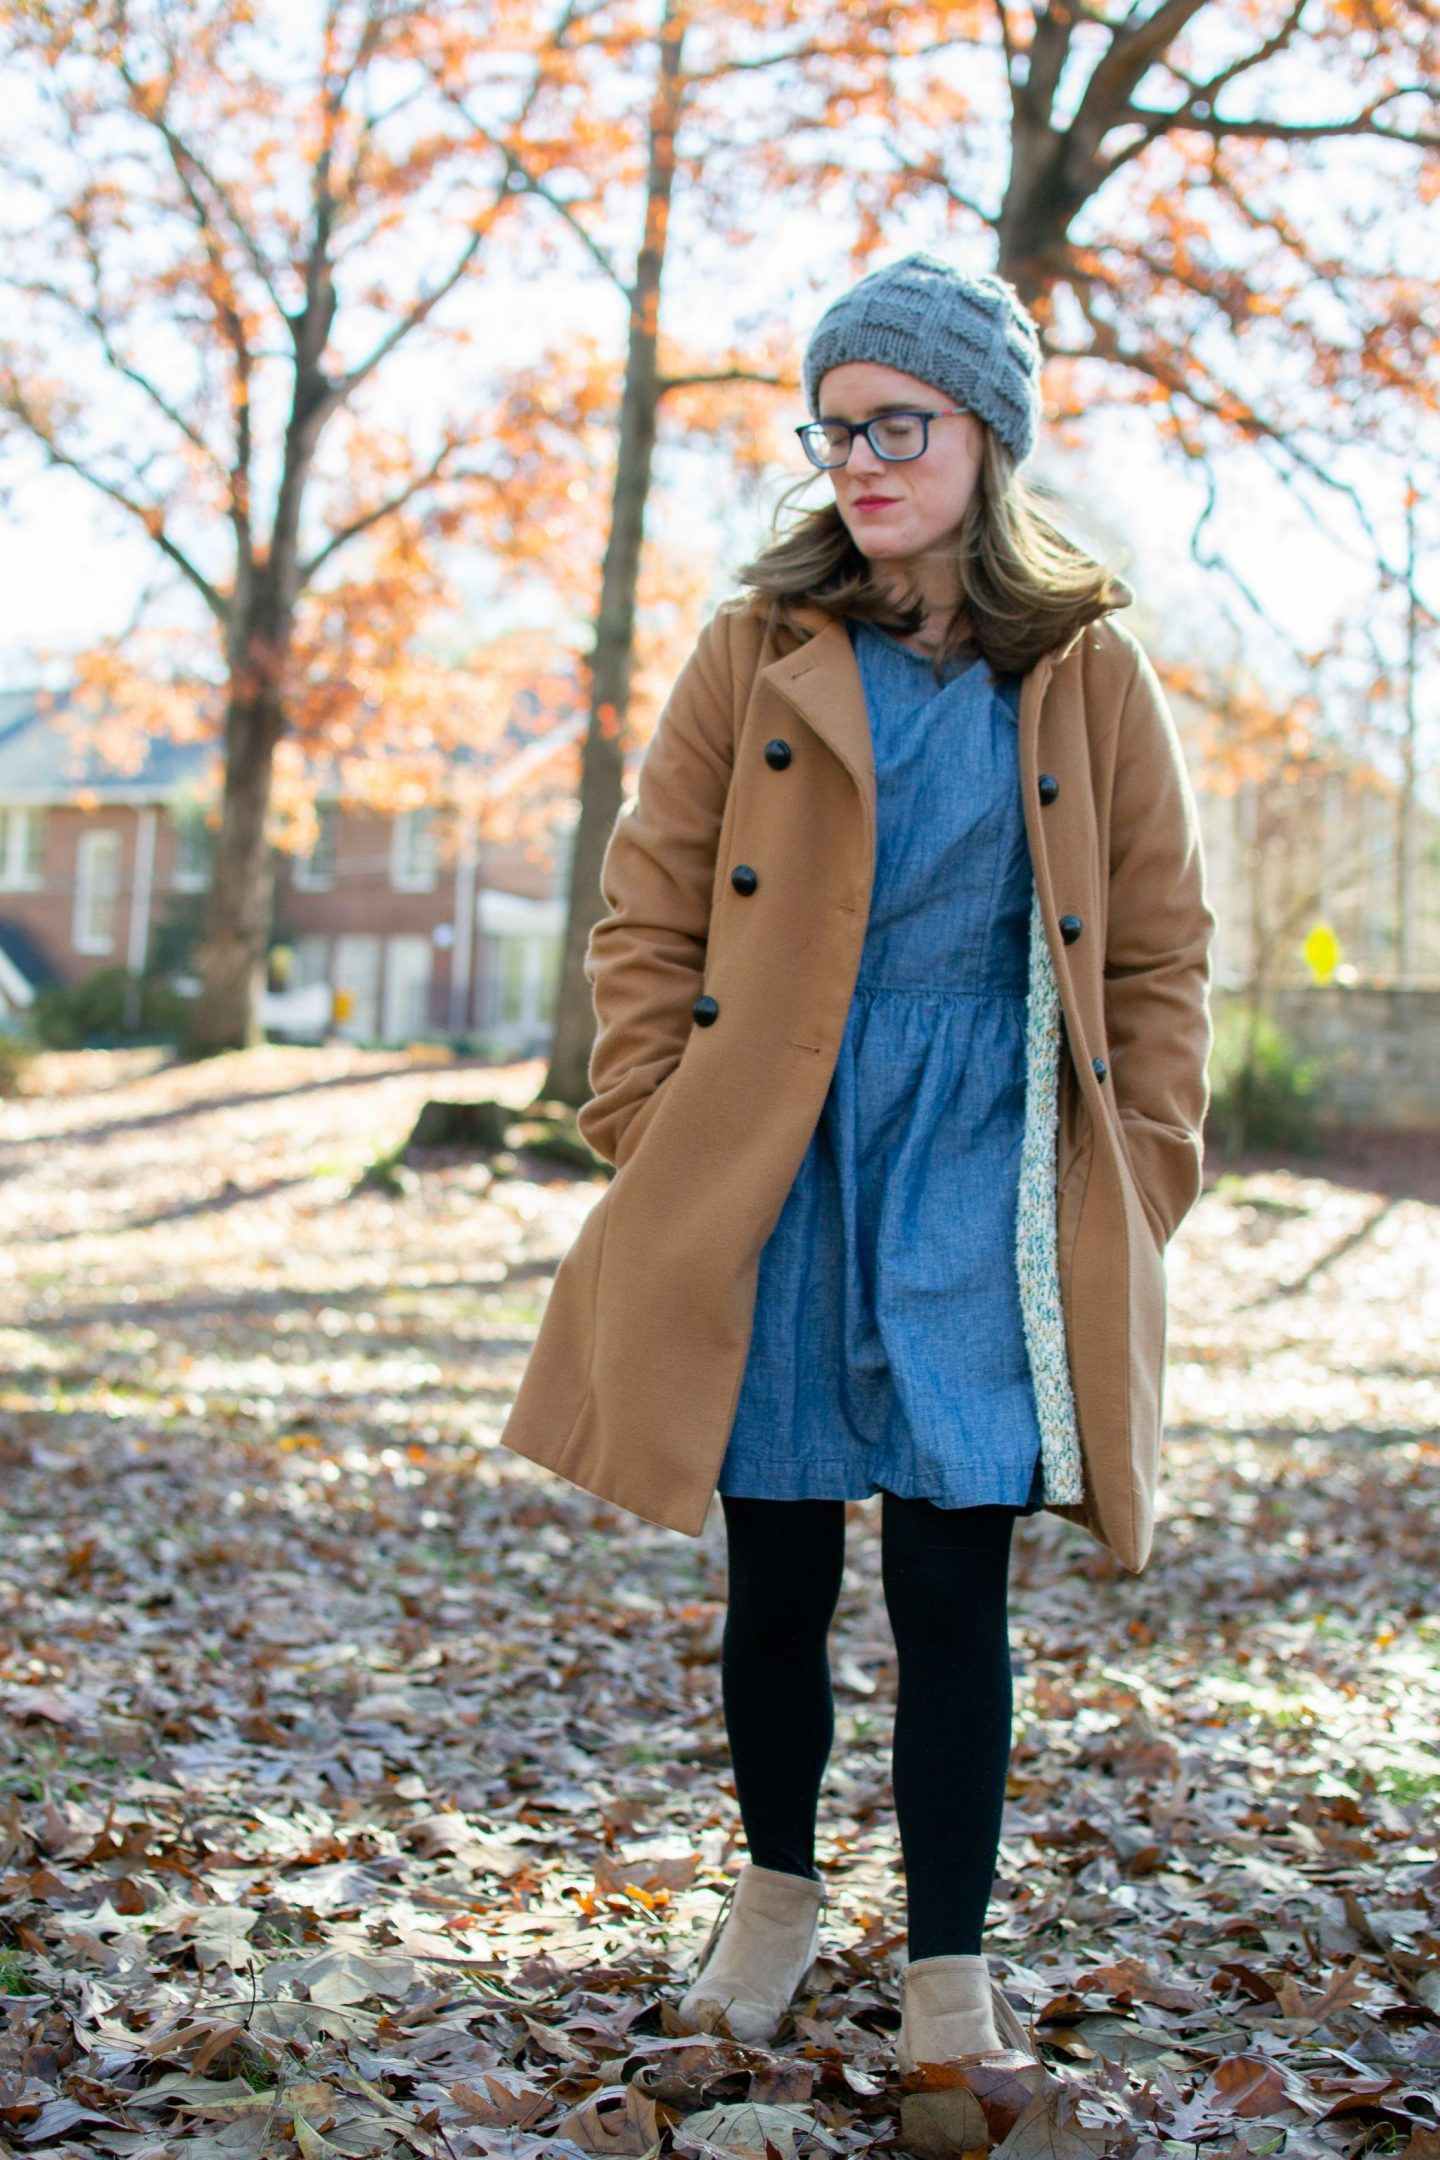 4dffbfbd1122 Layers of Lee - How to Wear a Summer Dress in Winter - Layers of Lee